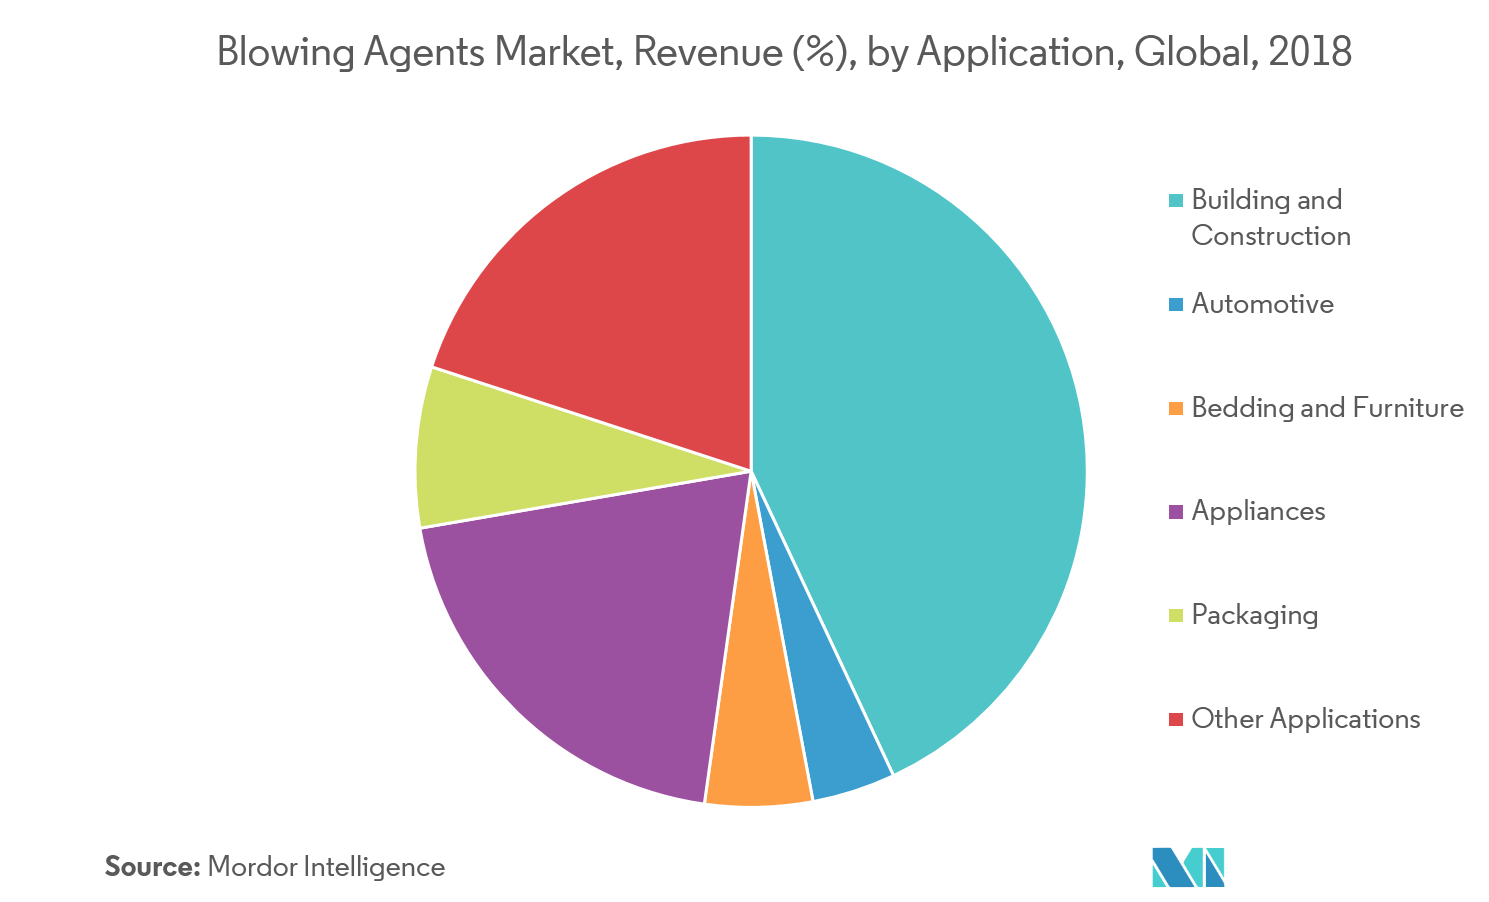 Blowing Agent Market- Segmentation